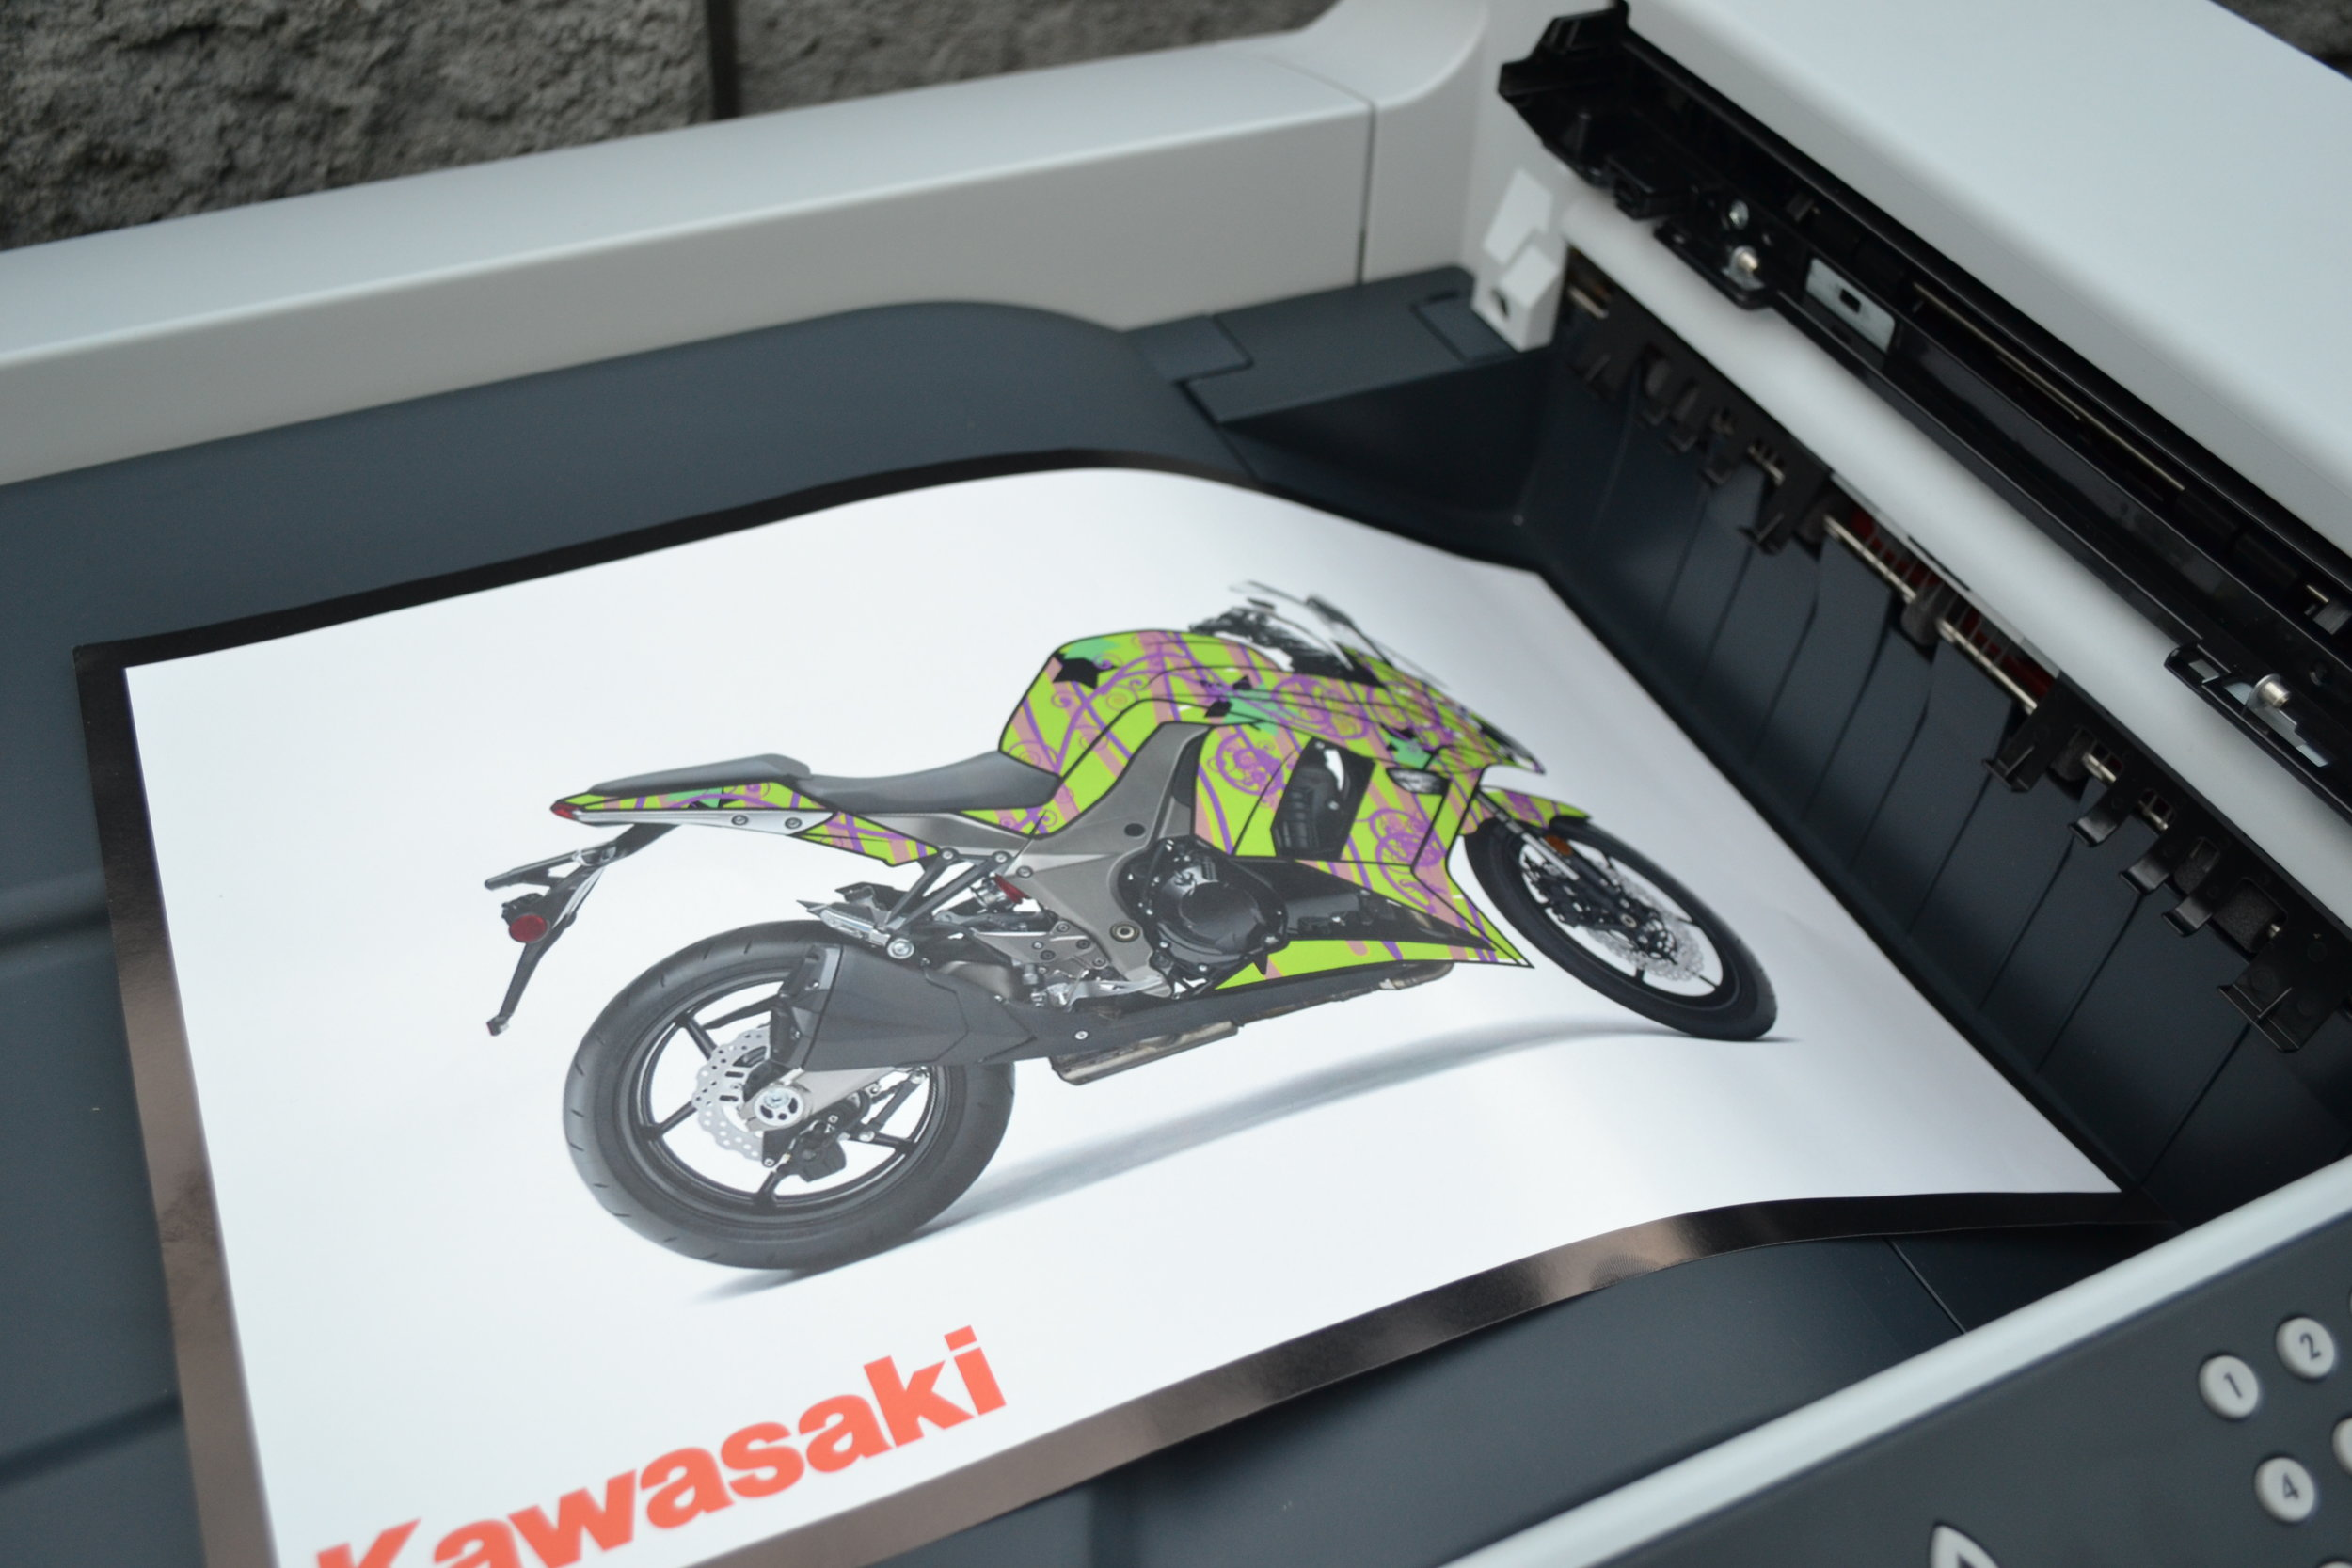 guests-received-printouts-of-their-cool-kawasaki-designs_6243944532_o_29121401381_o.jpg